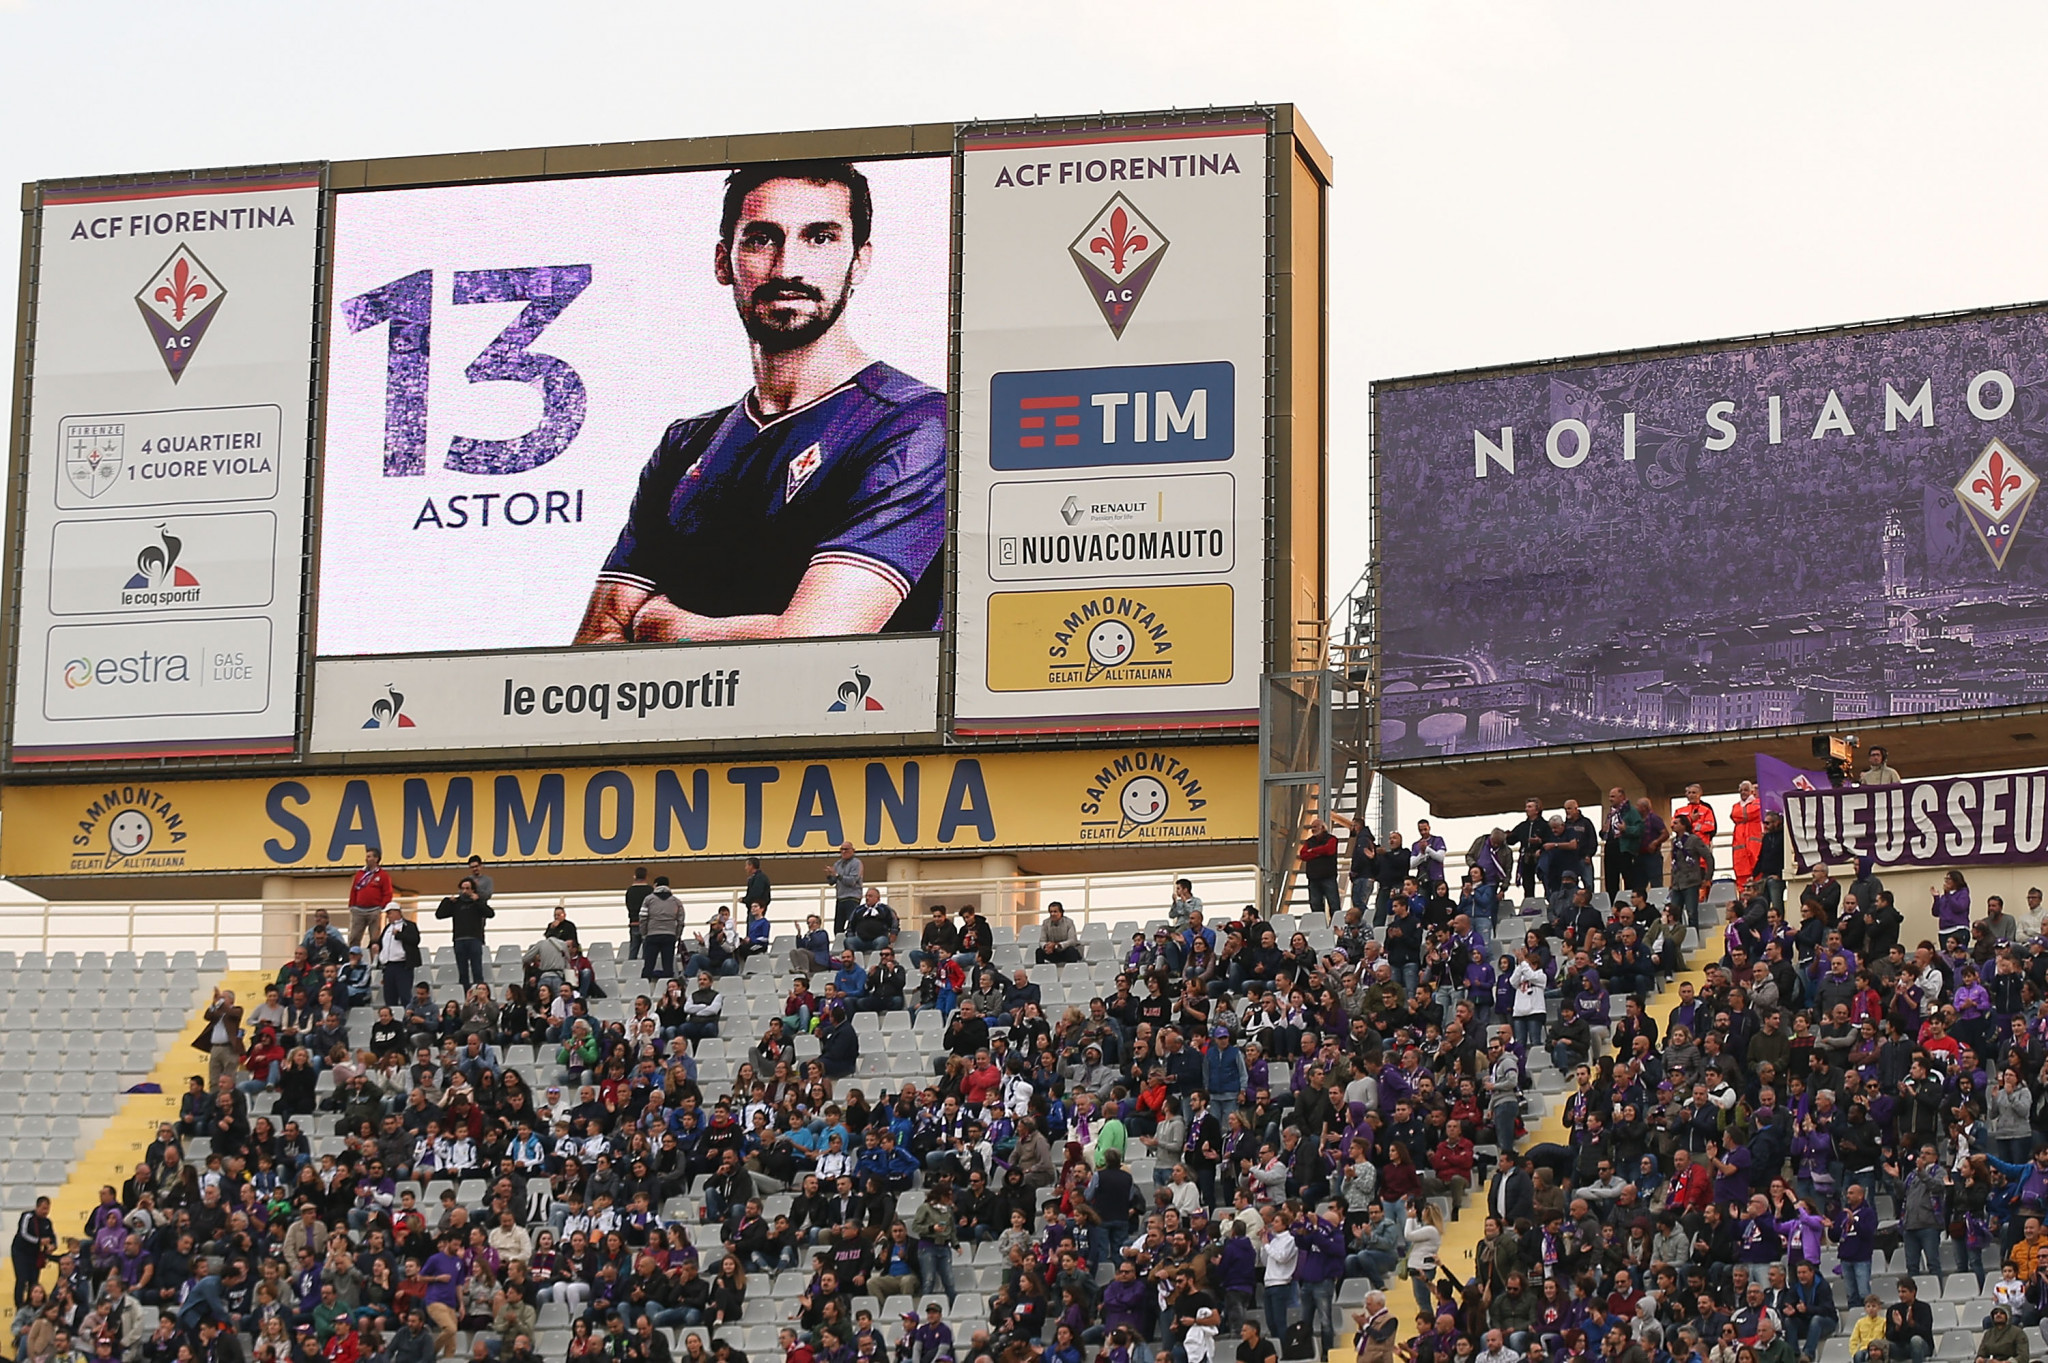 Italian doctors under investigation for alleged culpable homicide following death of Astori